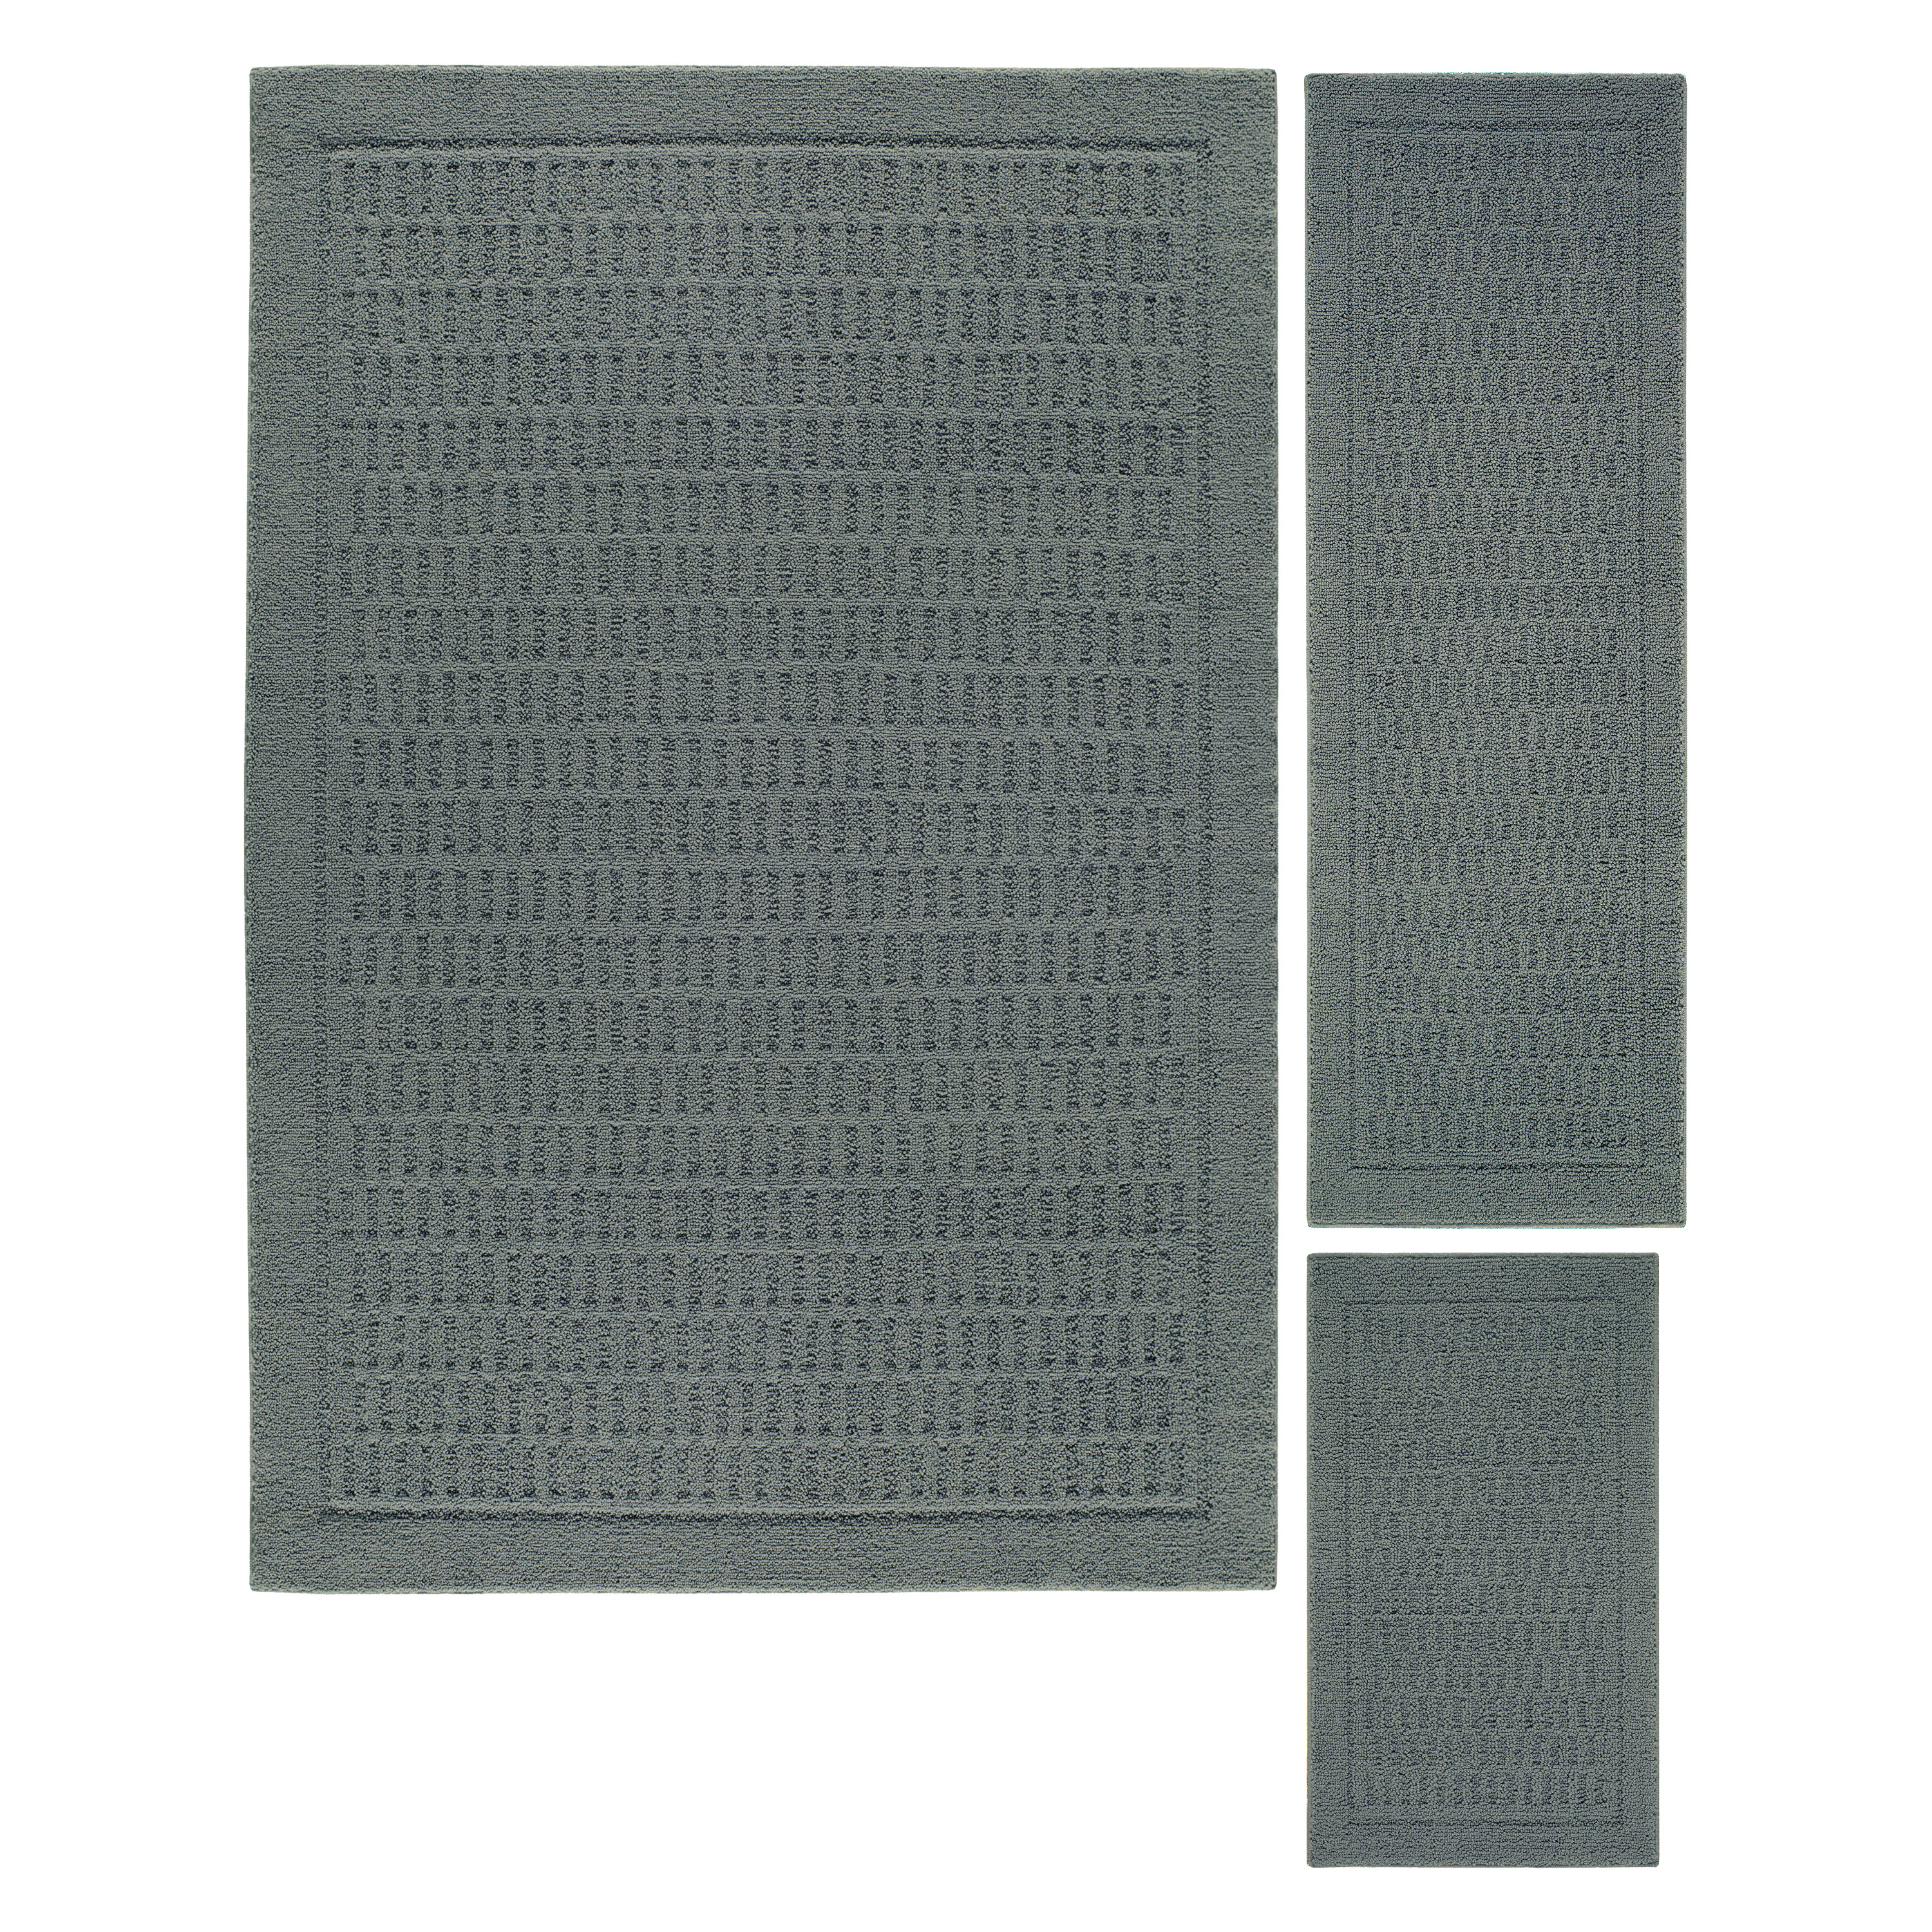 Mainstays Dylan Nylon 3-Piece 5'x7' Area Rug Set, Multiple Colors